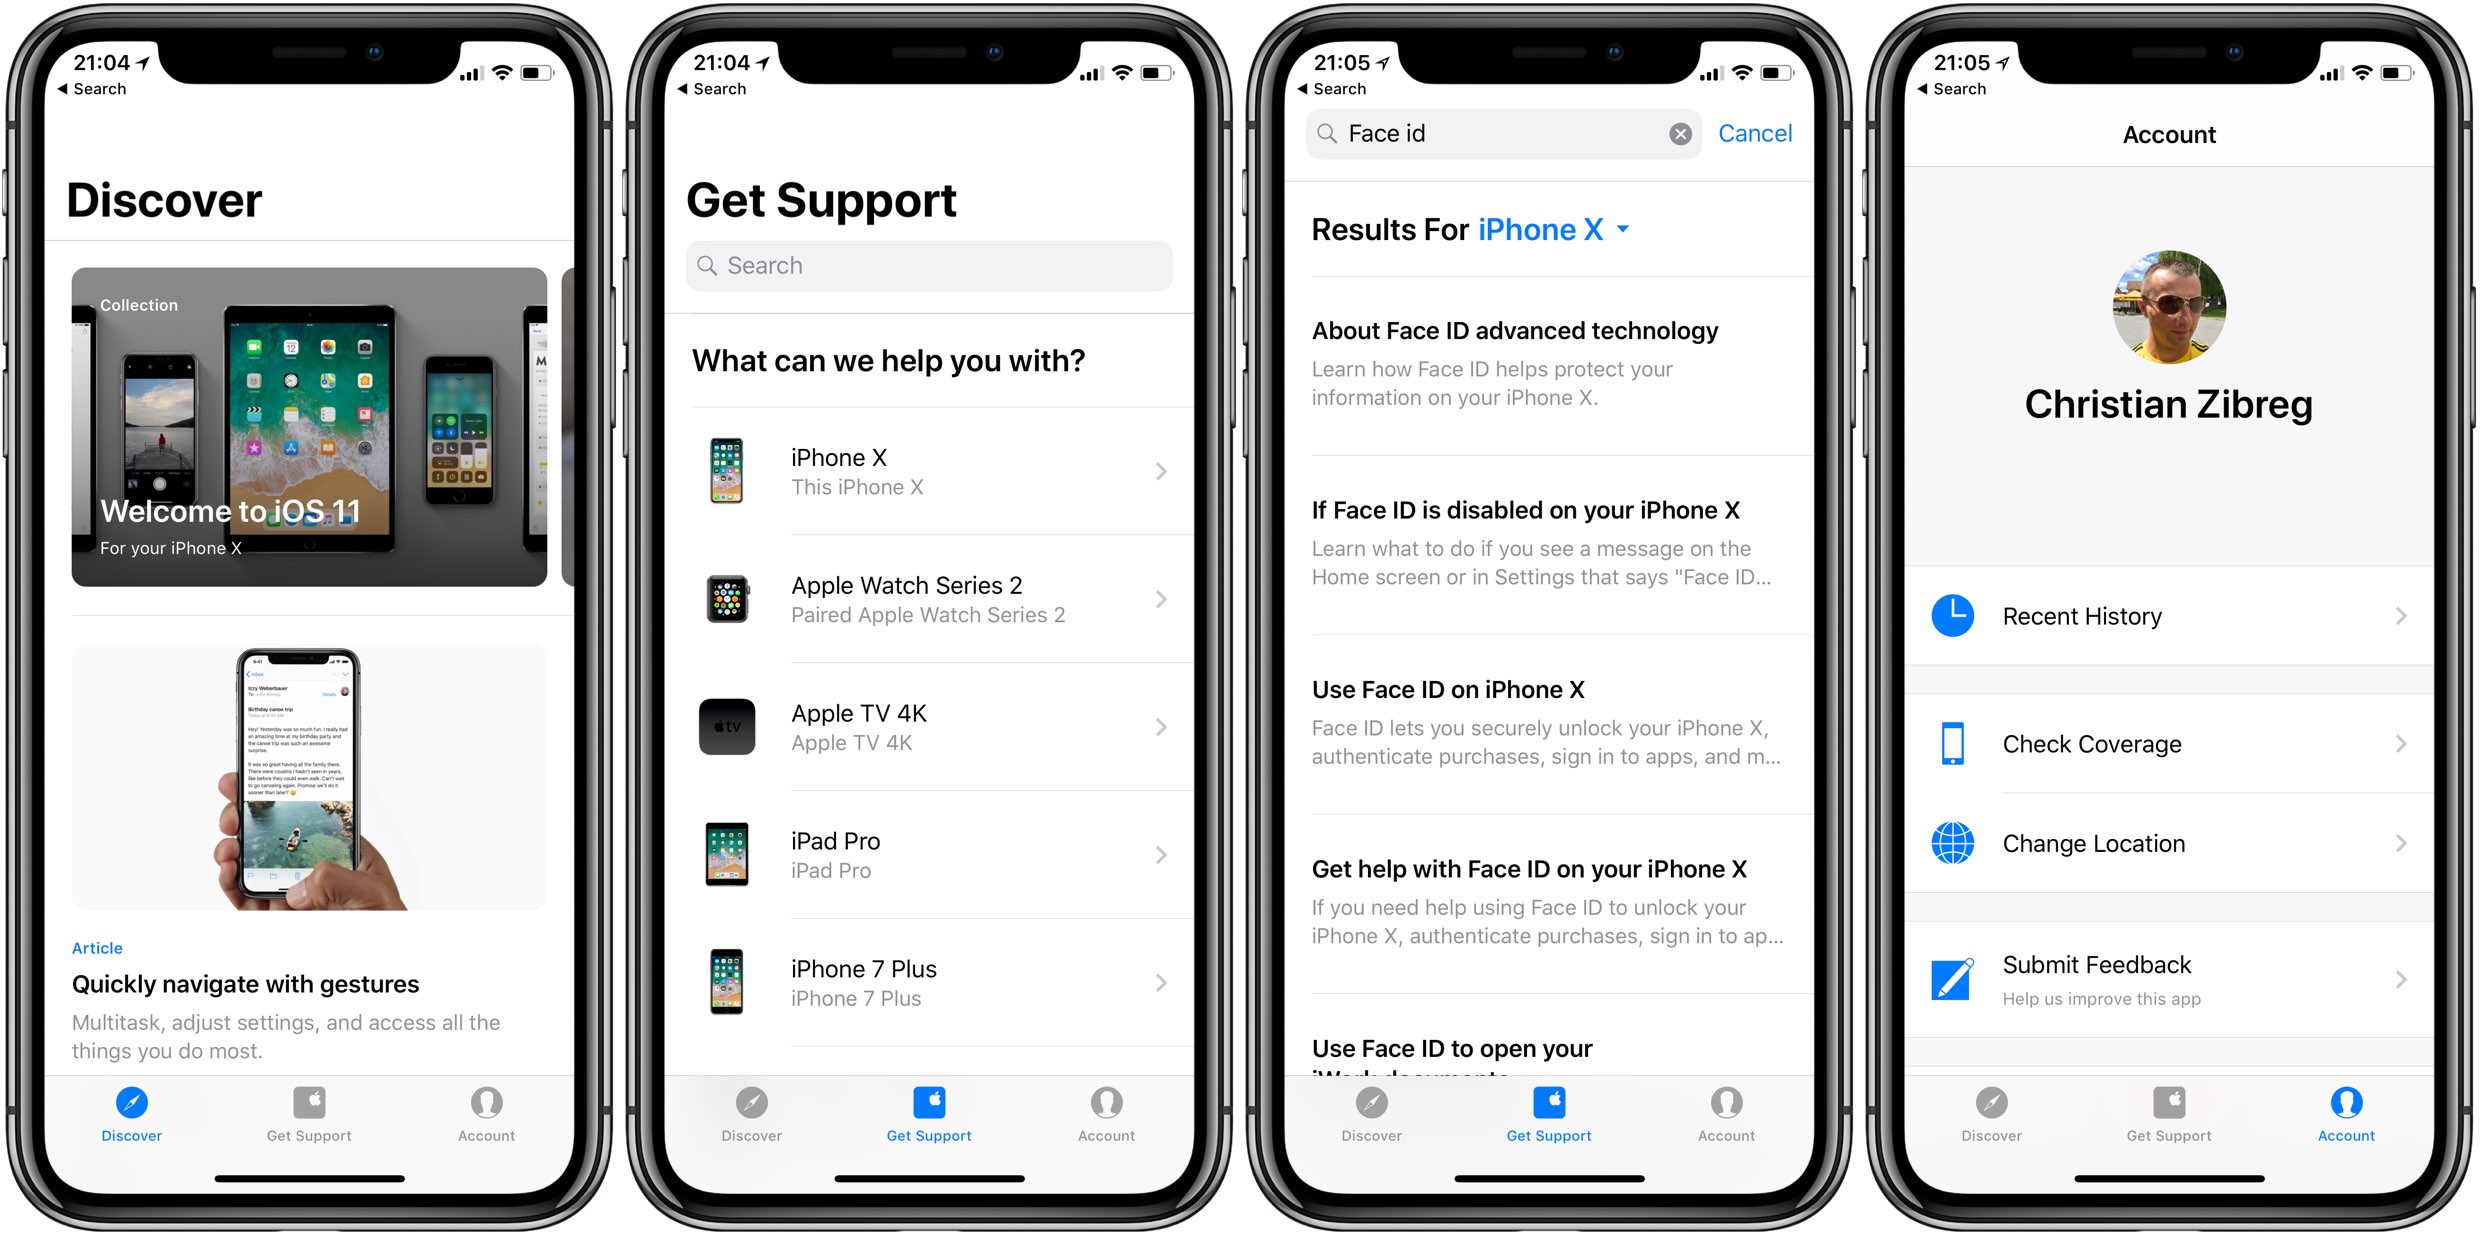 Apple revamps Support app, adds new Discover section